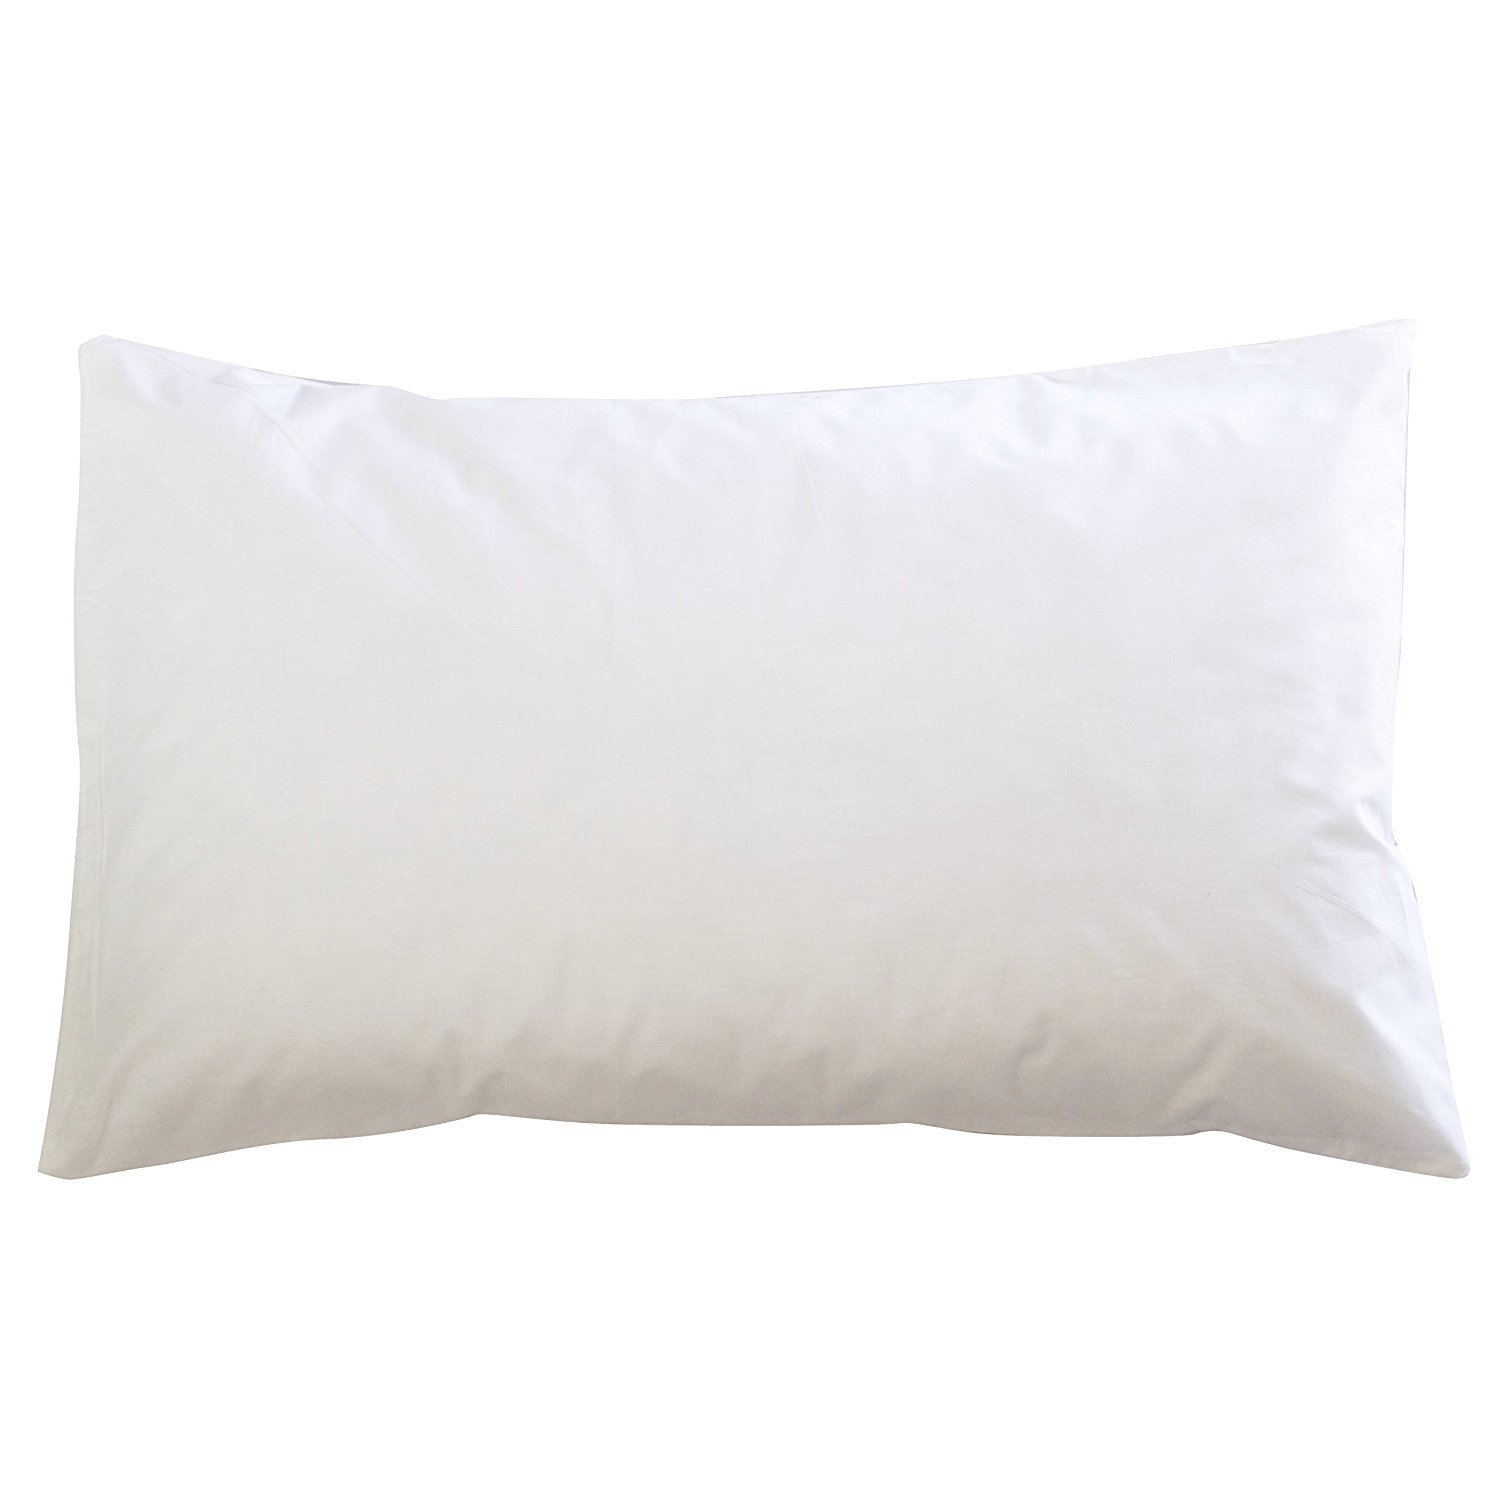 European 800 Fill Power White Goose Down Pillow. (King)